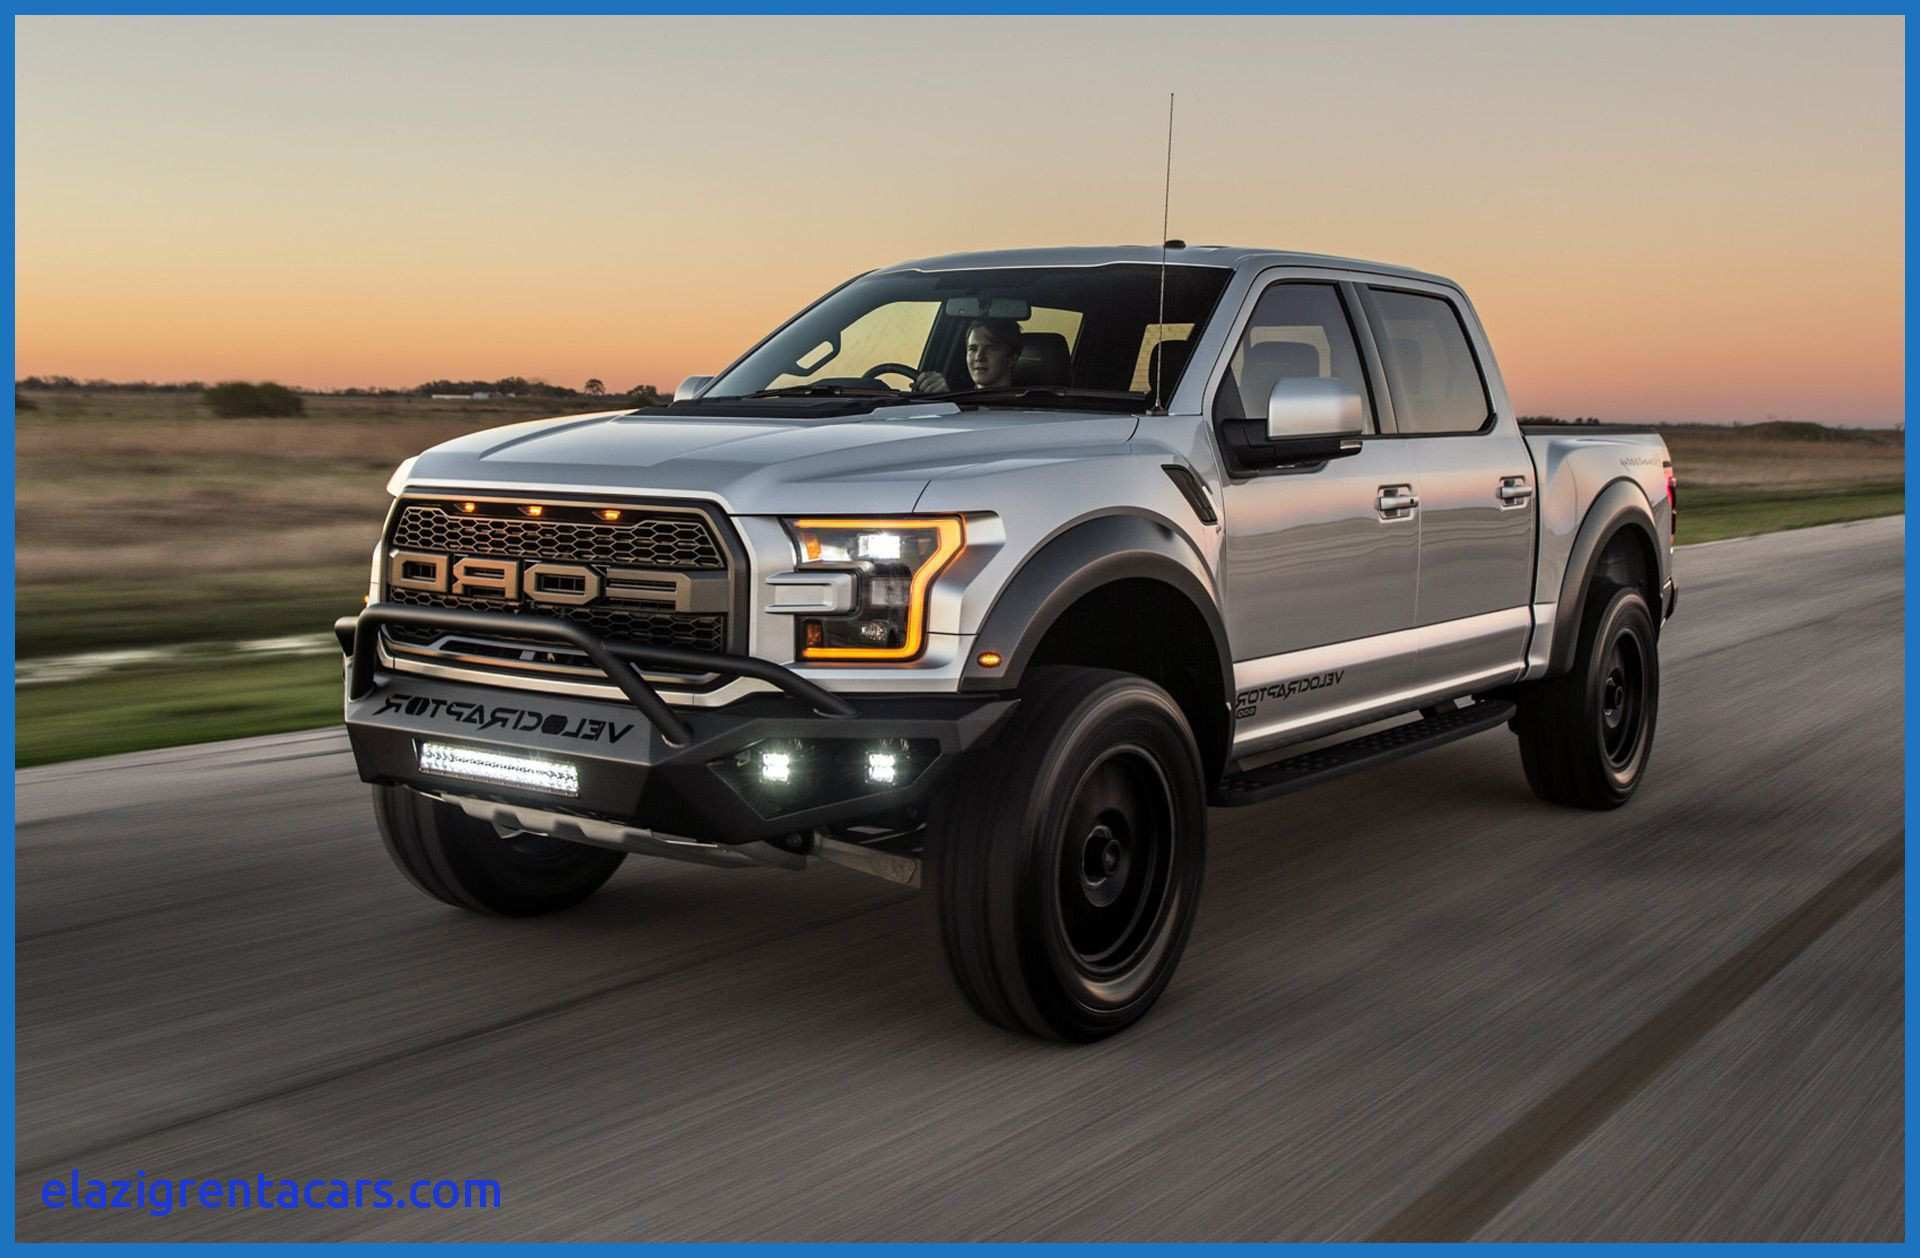 52 Concept of 2019 Ford Raptor 7 0L Price with 2019 Ford Raptor 7 0L